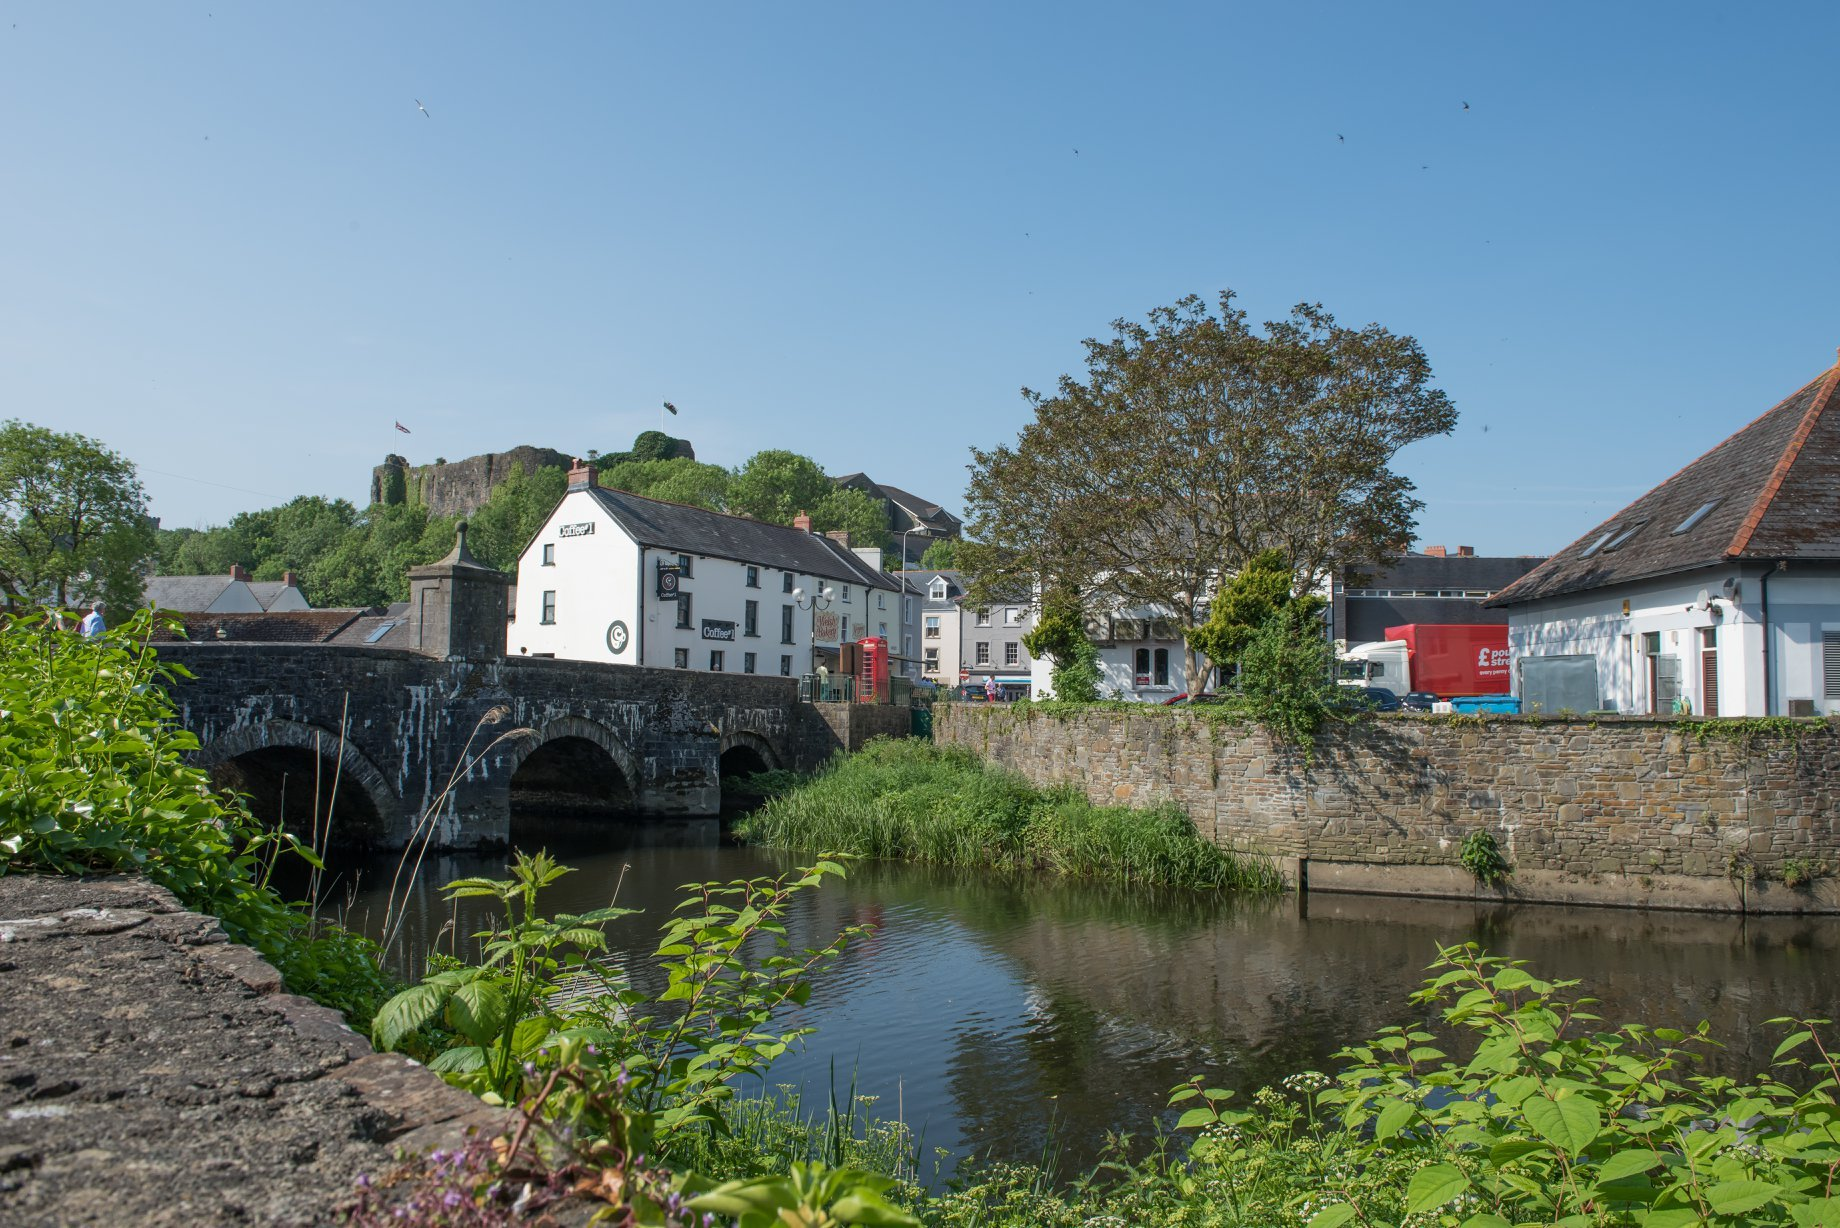 The old bridge in Haverfordwest taken by Robert Page